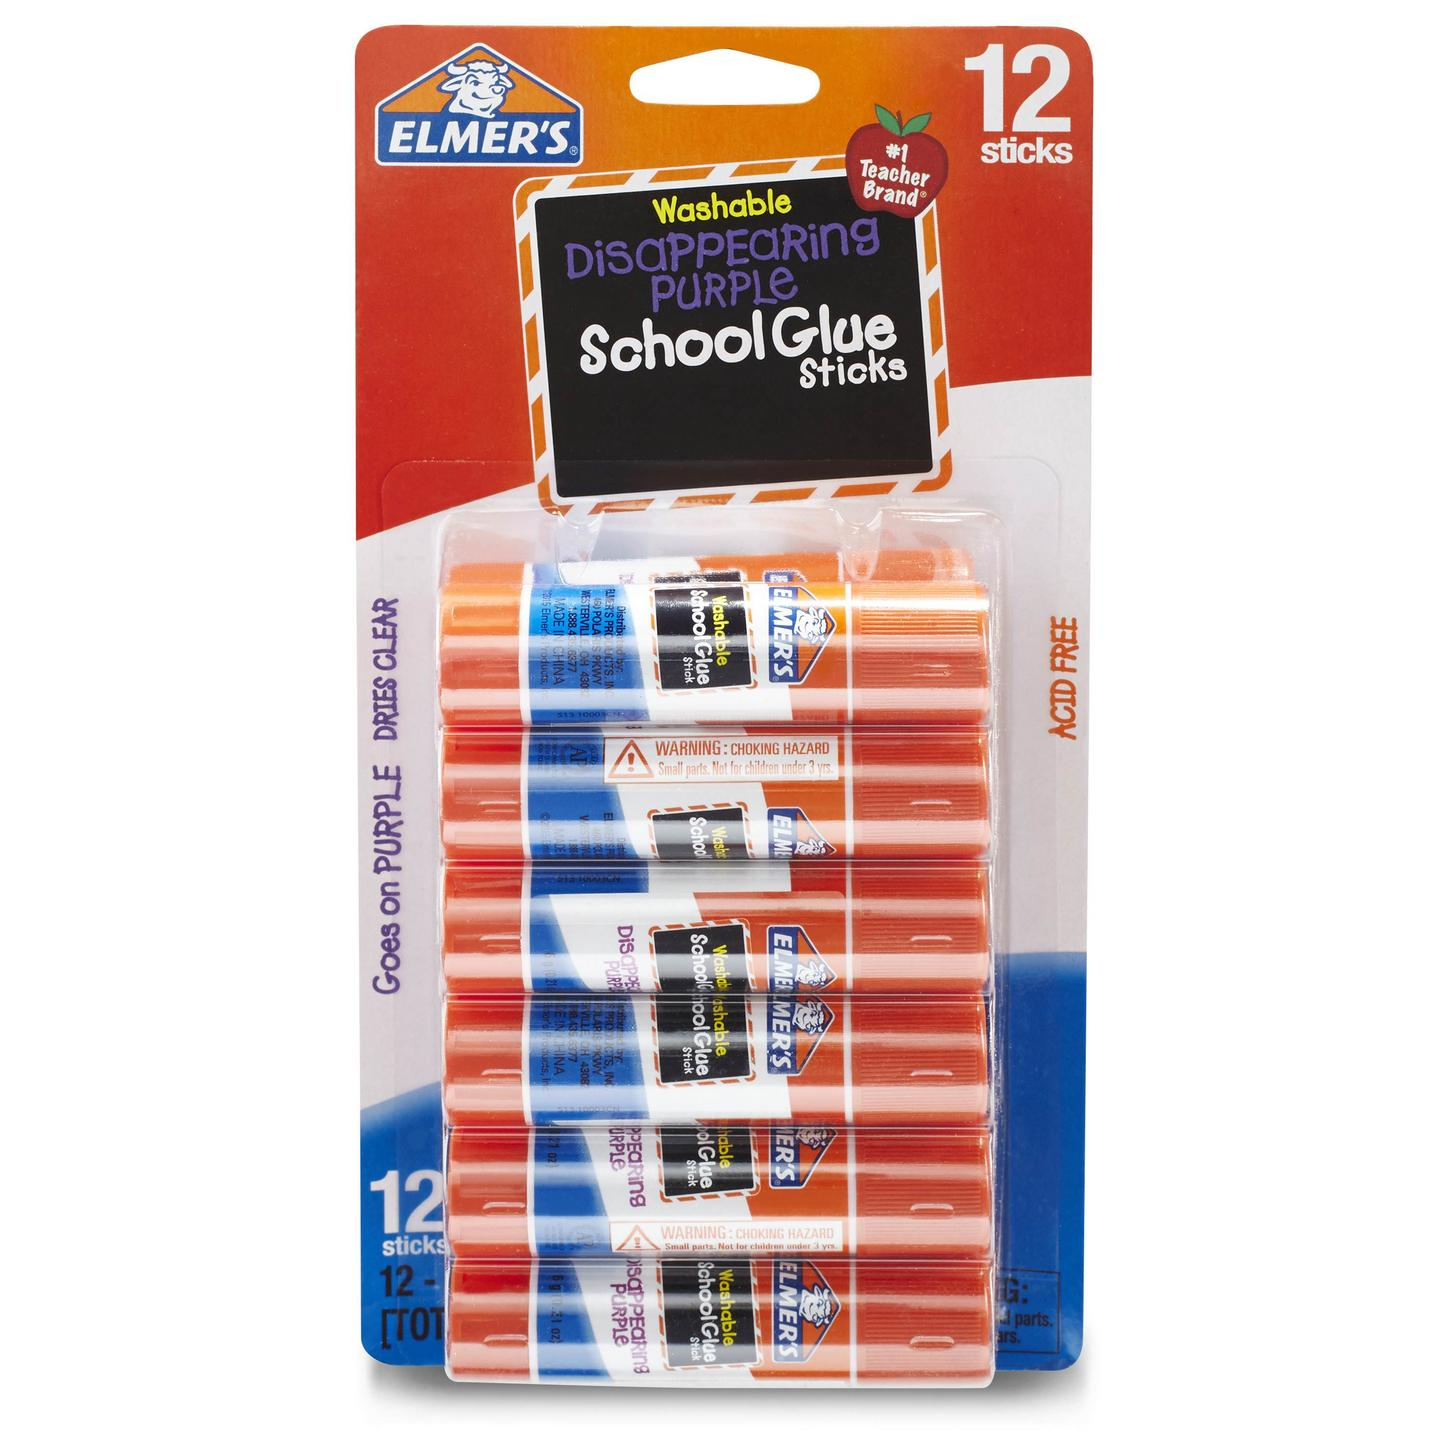 Elmer's Disappearing Purple Washable School Glue Sticks, 0.21 Ounces, 12 Count